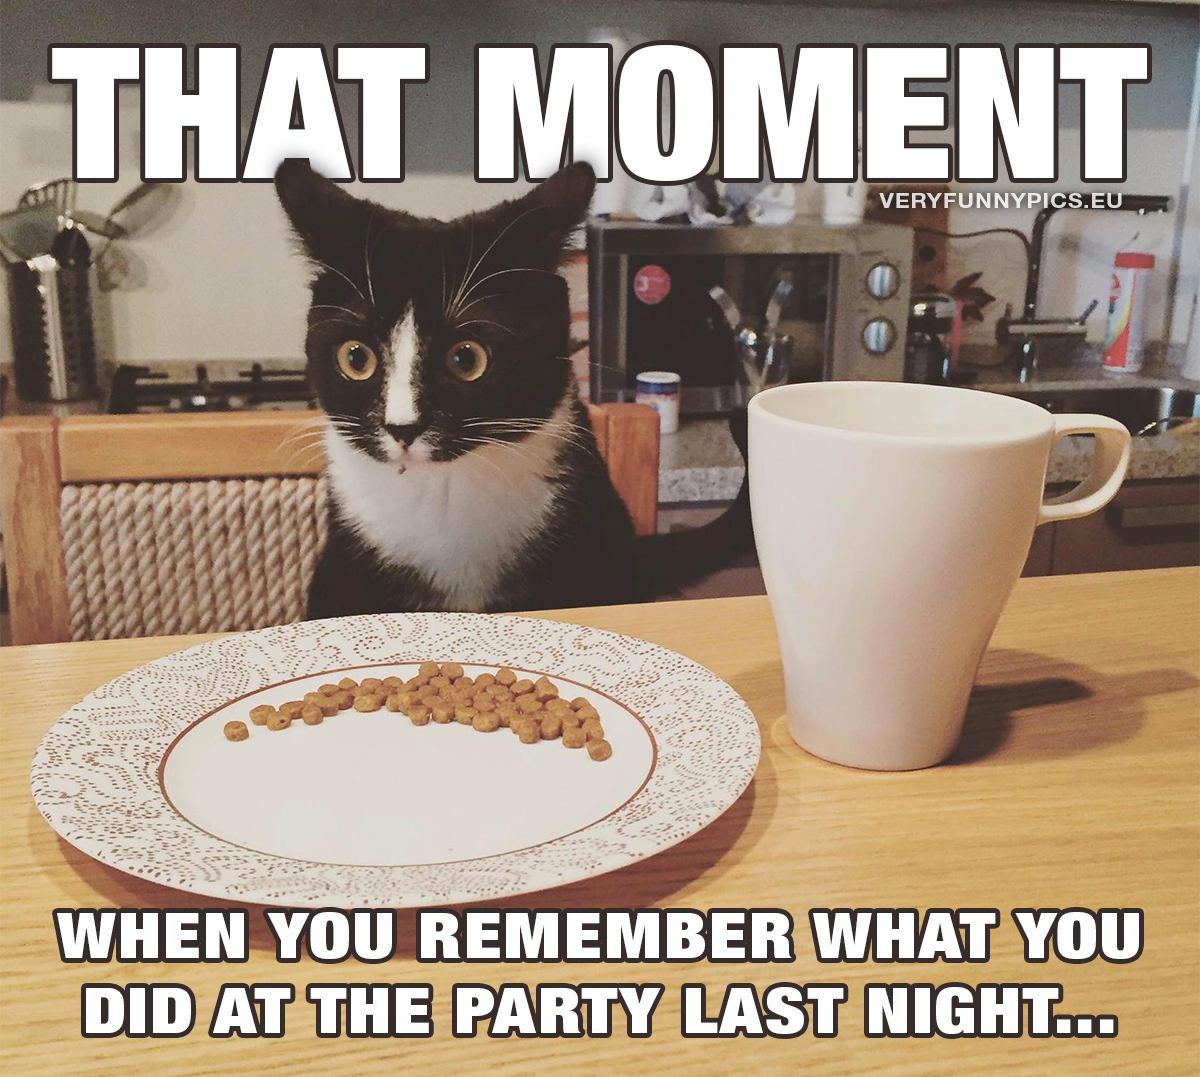 Cat at breakfast table - That moment when you remember what you did at the party last night